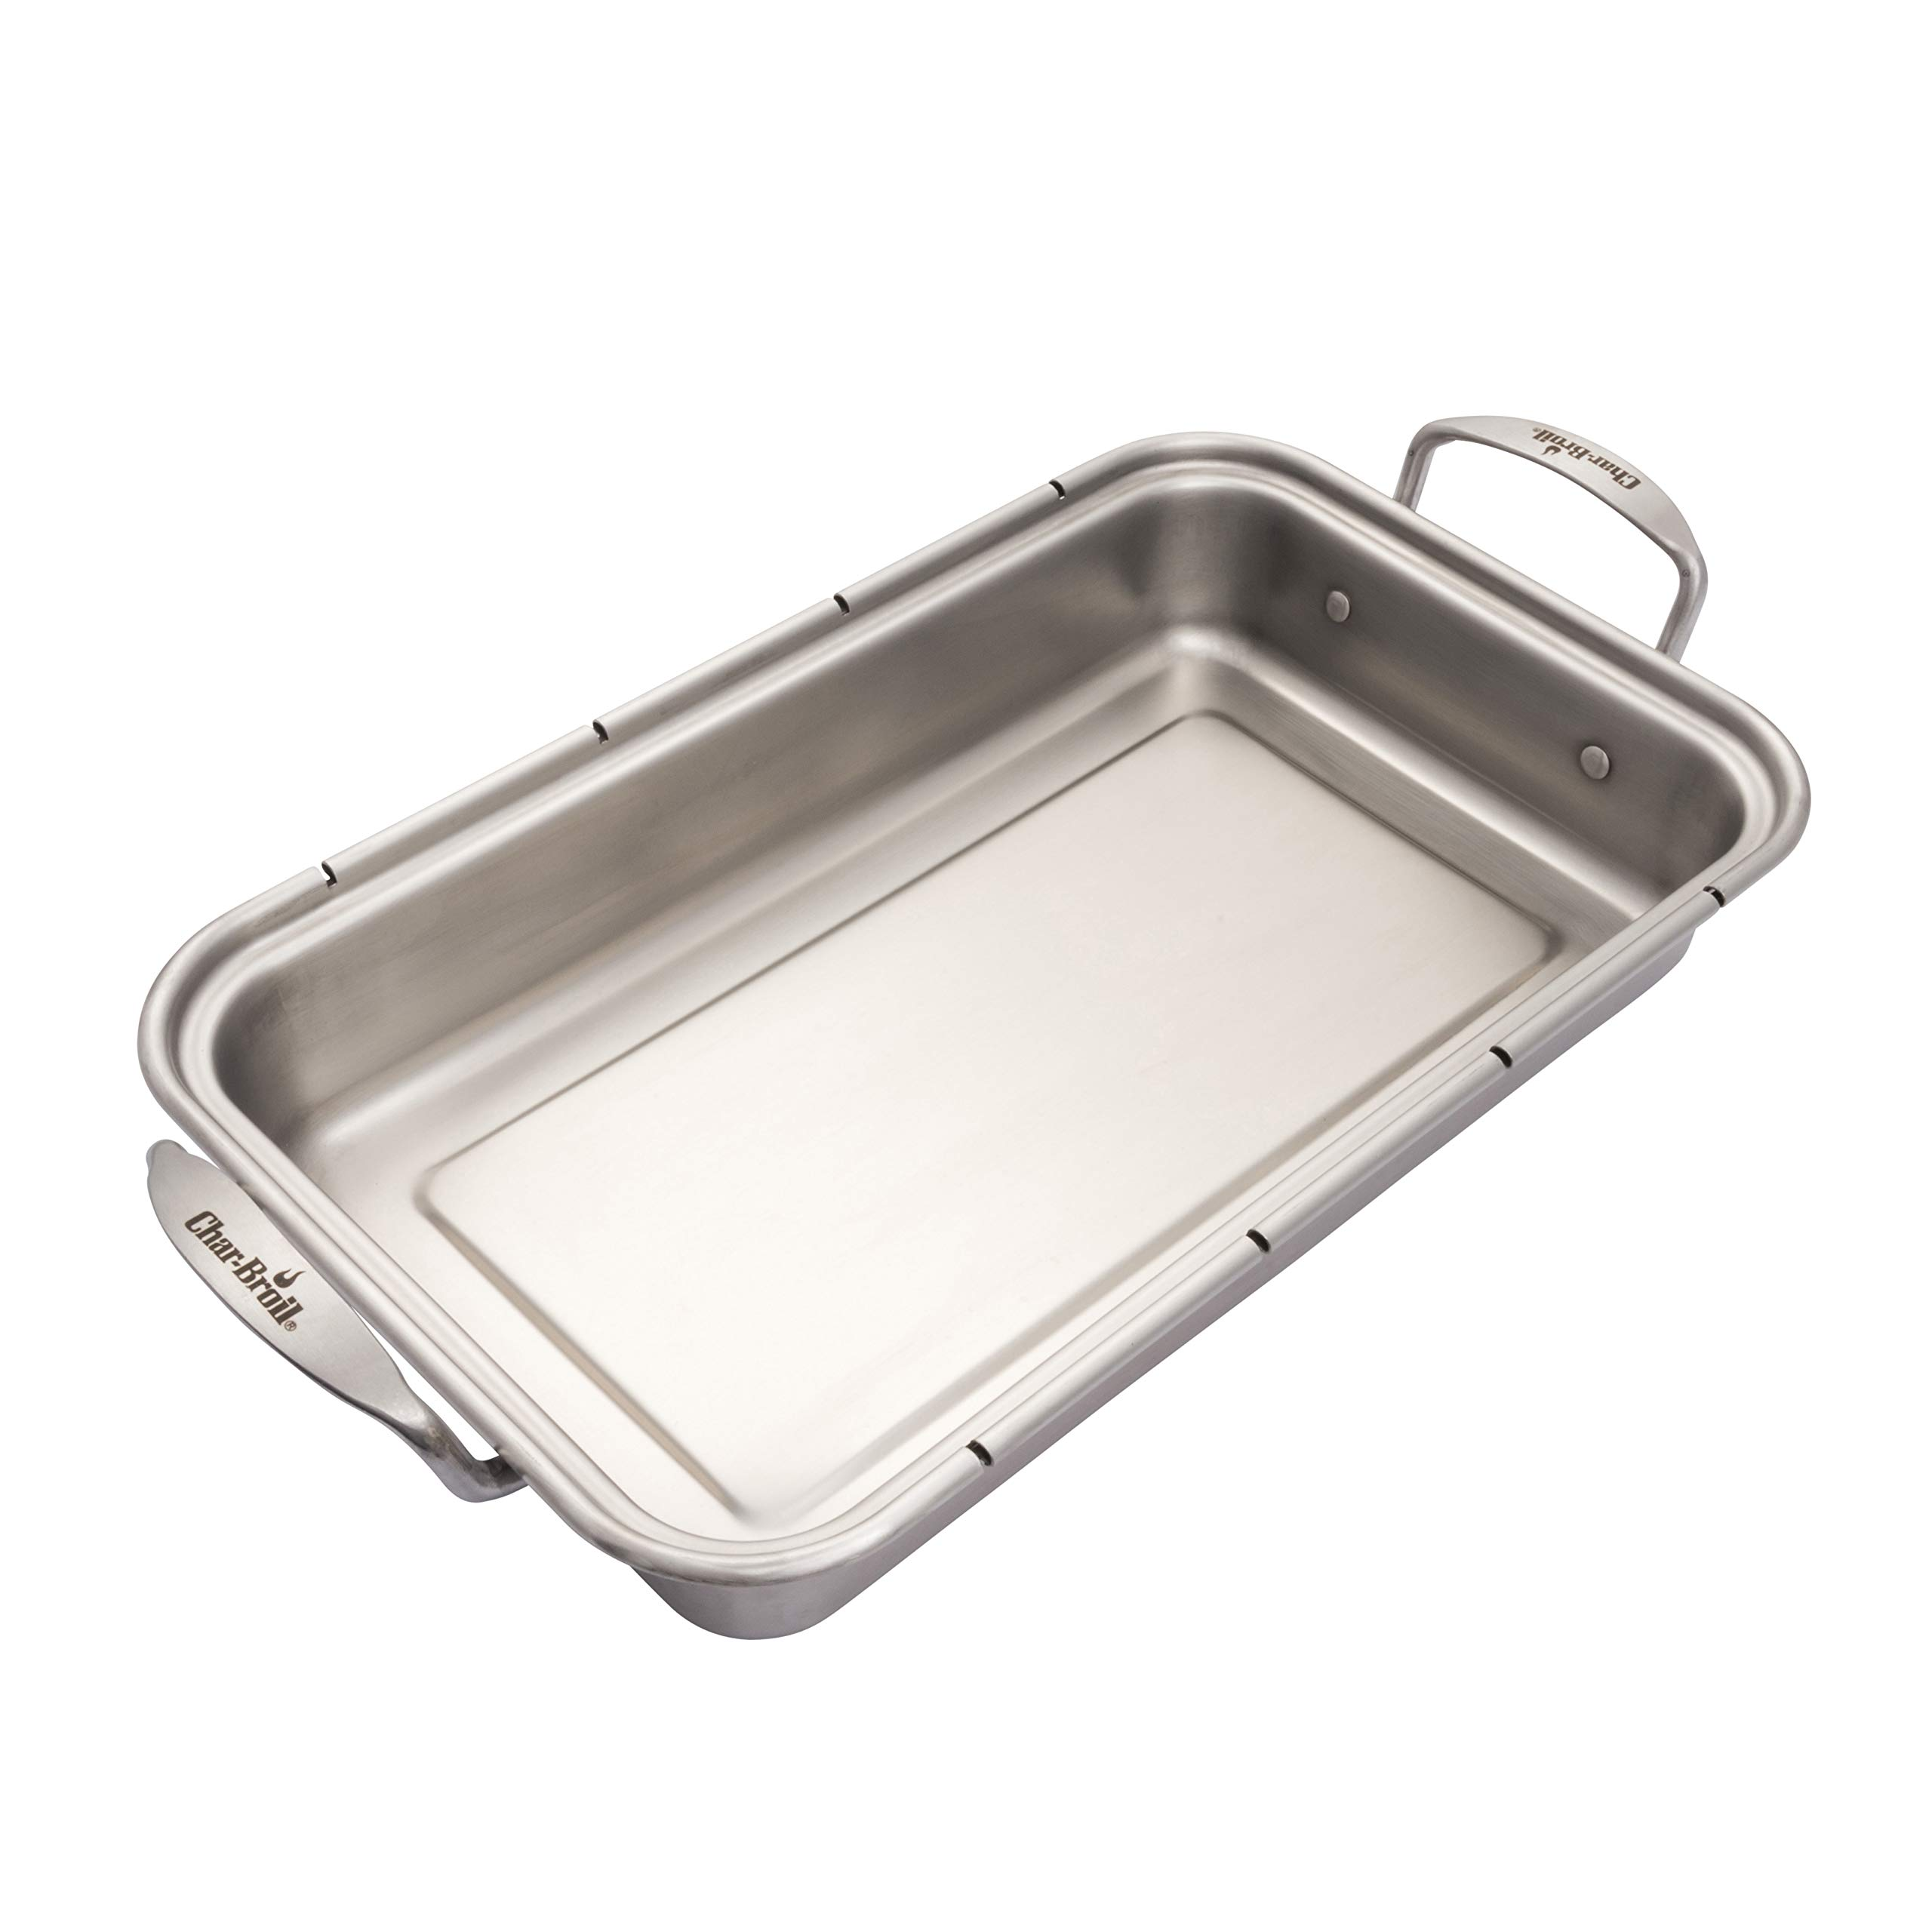 Char-Broil 3526981P04 Grill+ Roasting Pan & Cutting Board, Silver by Char-Broil (Image #1)